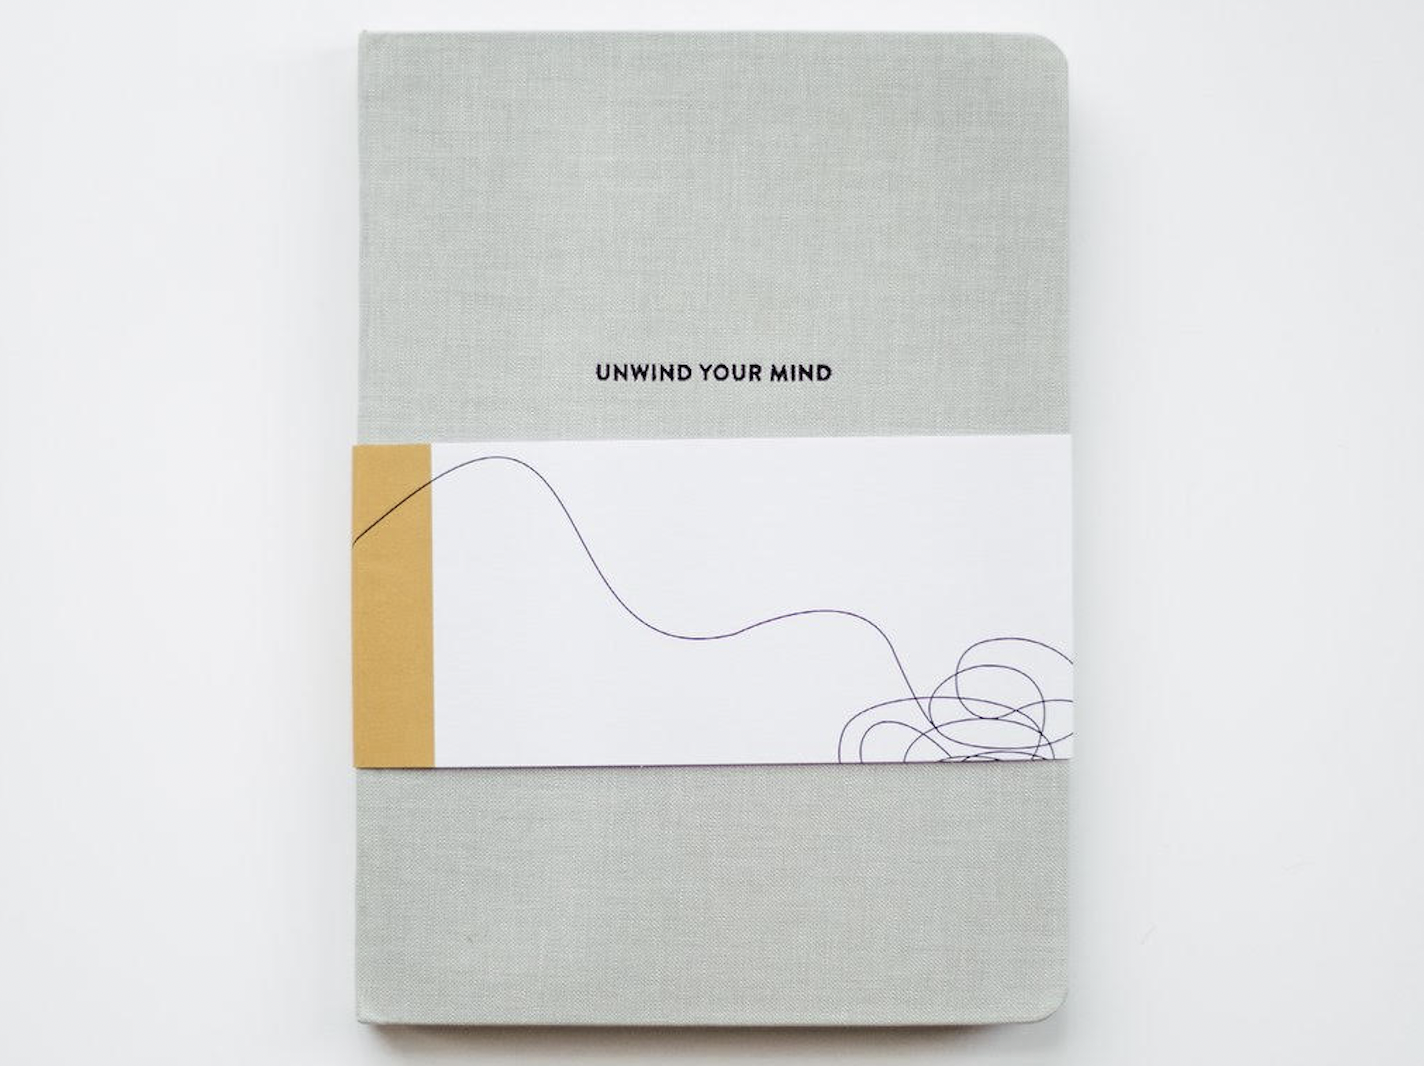 Inspired and empowering, the Unwind Your Mind Journal is a great gift from anyone wanting to chronicle their cancer journey while staying positive and feeling supported